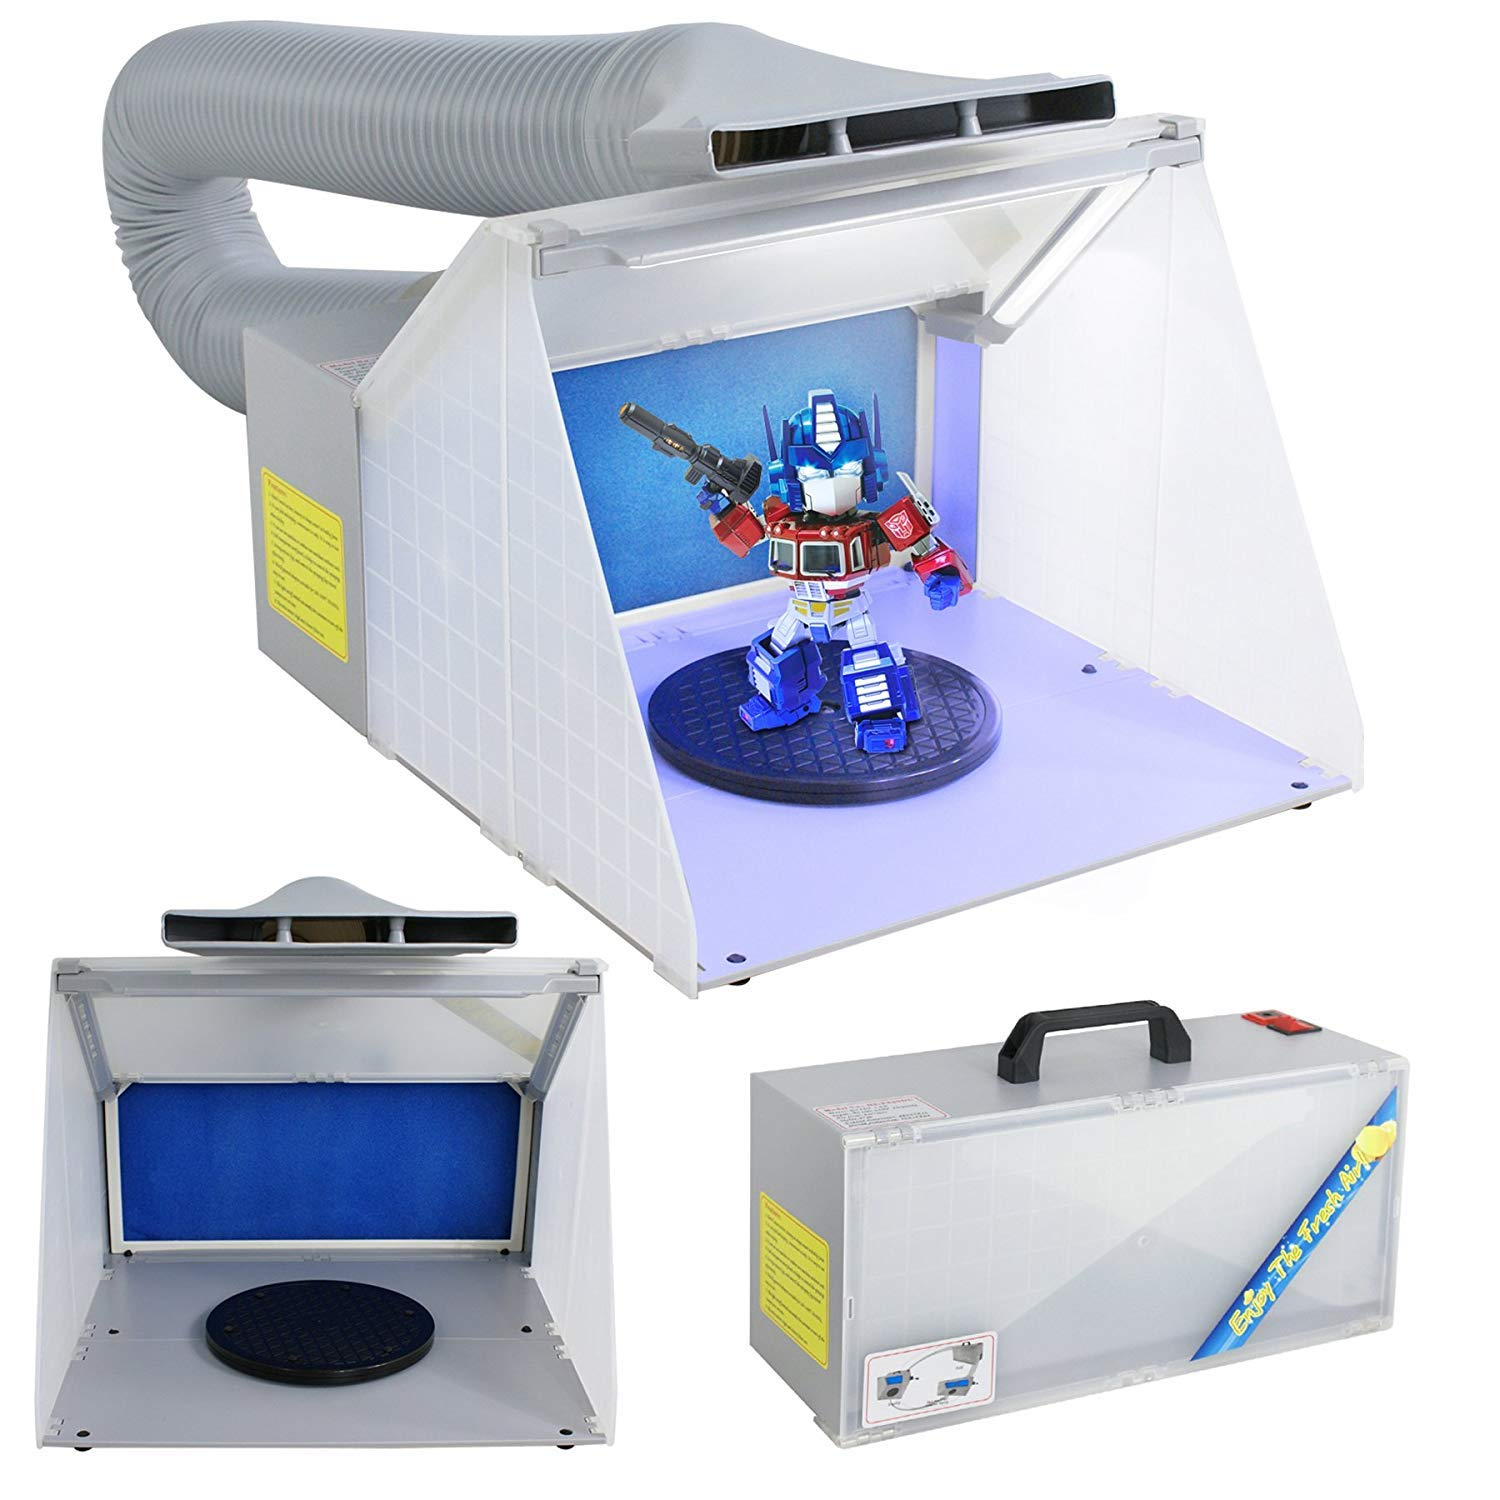 F2C Airbrush Spray Booth Kit Paint Craft Odor Extractory Hobby Spray Booth Portable W/LED Light Turn Table Powerful Fan for Toy Model Parts (Bonus Led Lights)